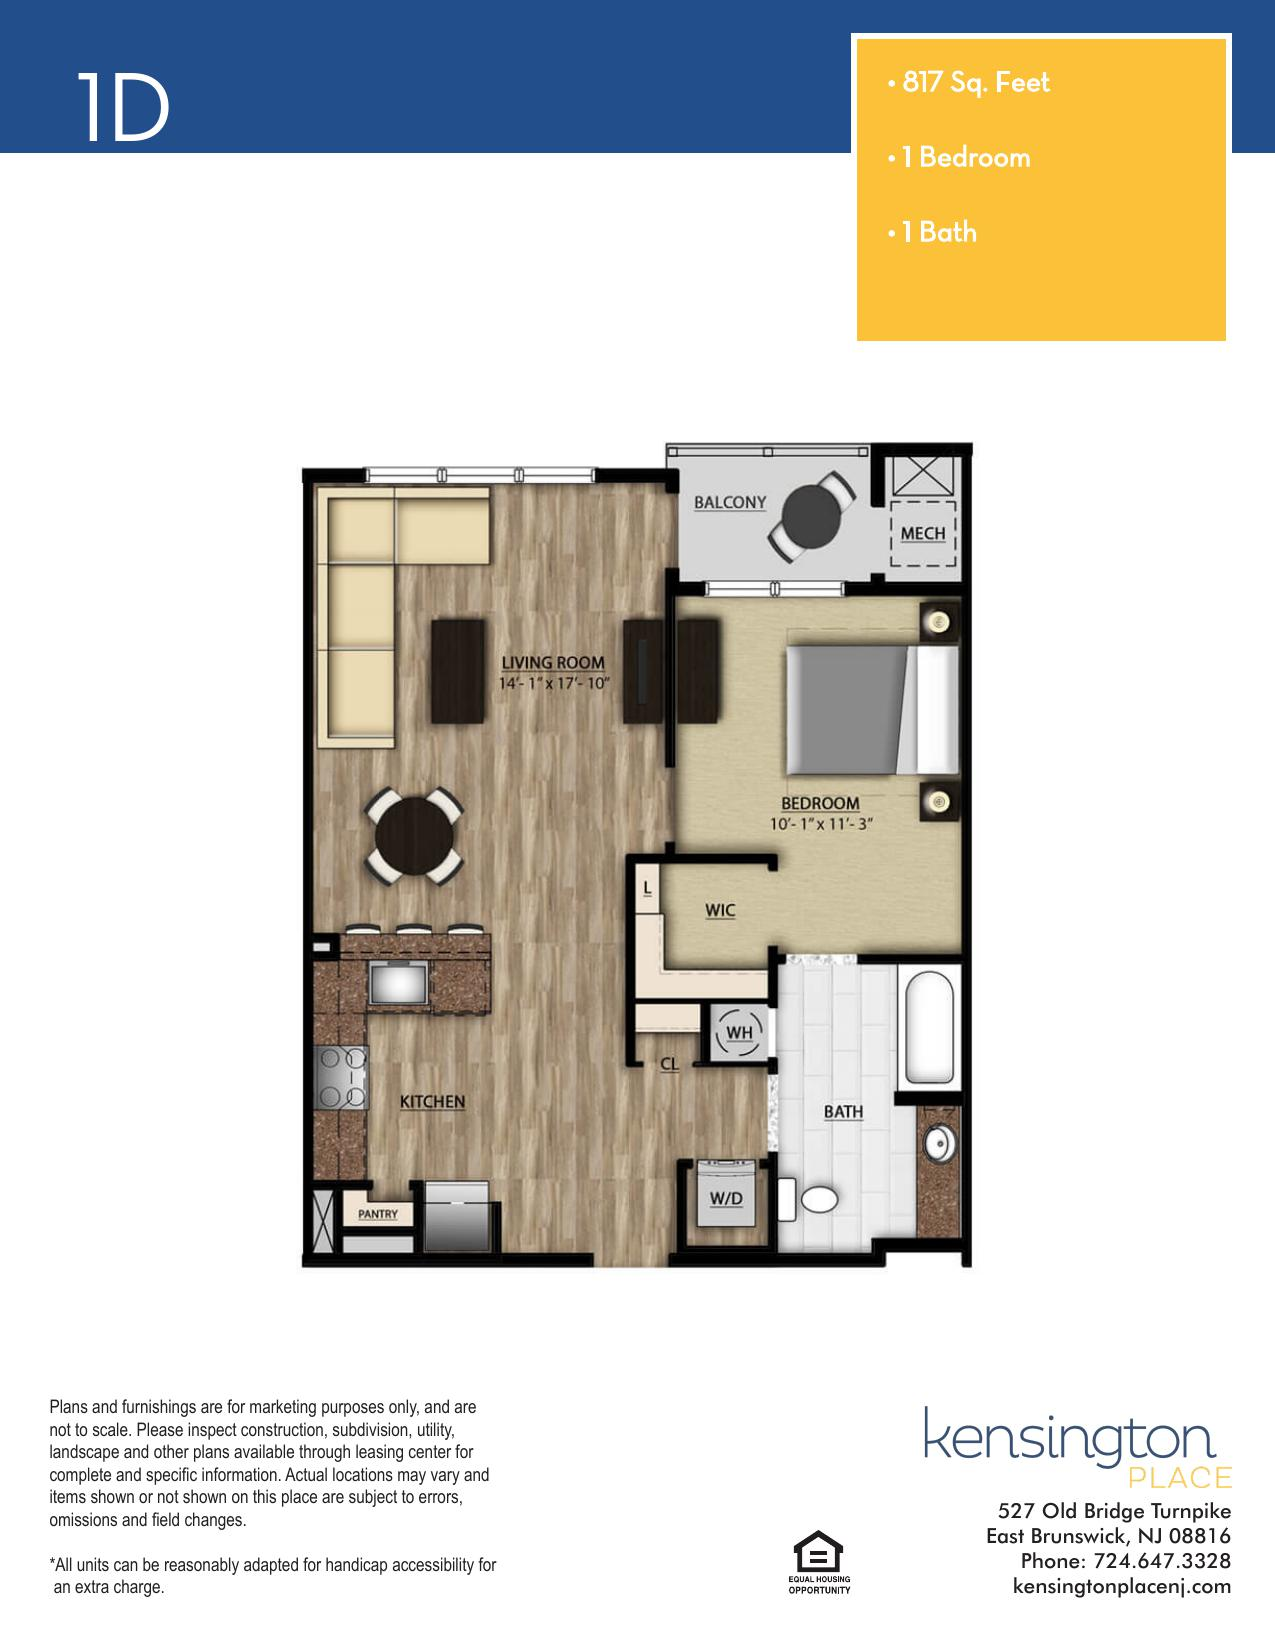 Kensington Place Apartment Floor Plan 1D